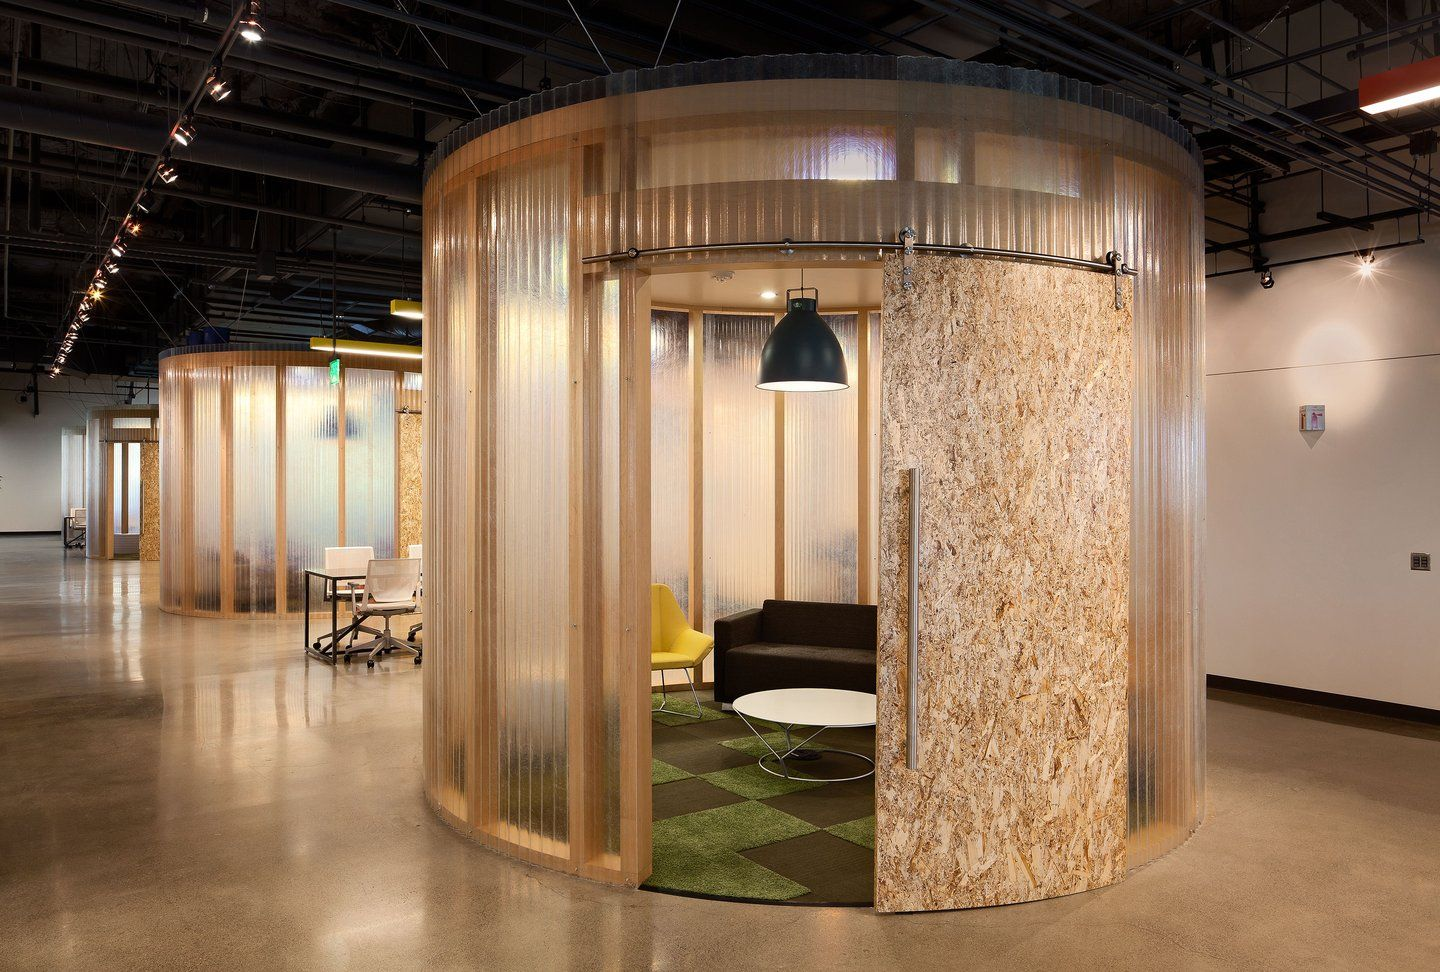 design meeting rooms office designs open office design office spaces